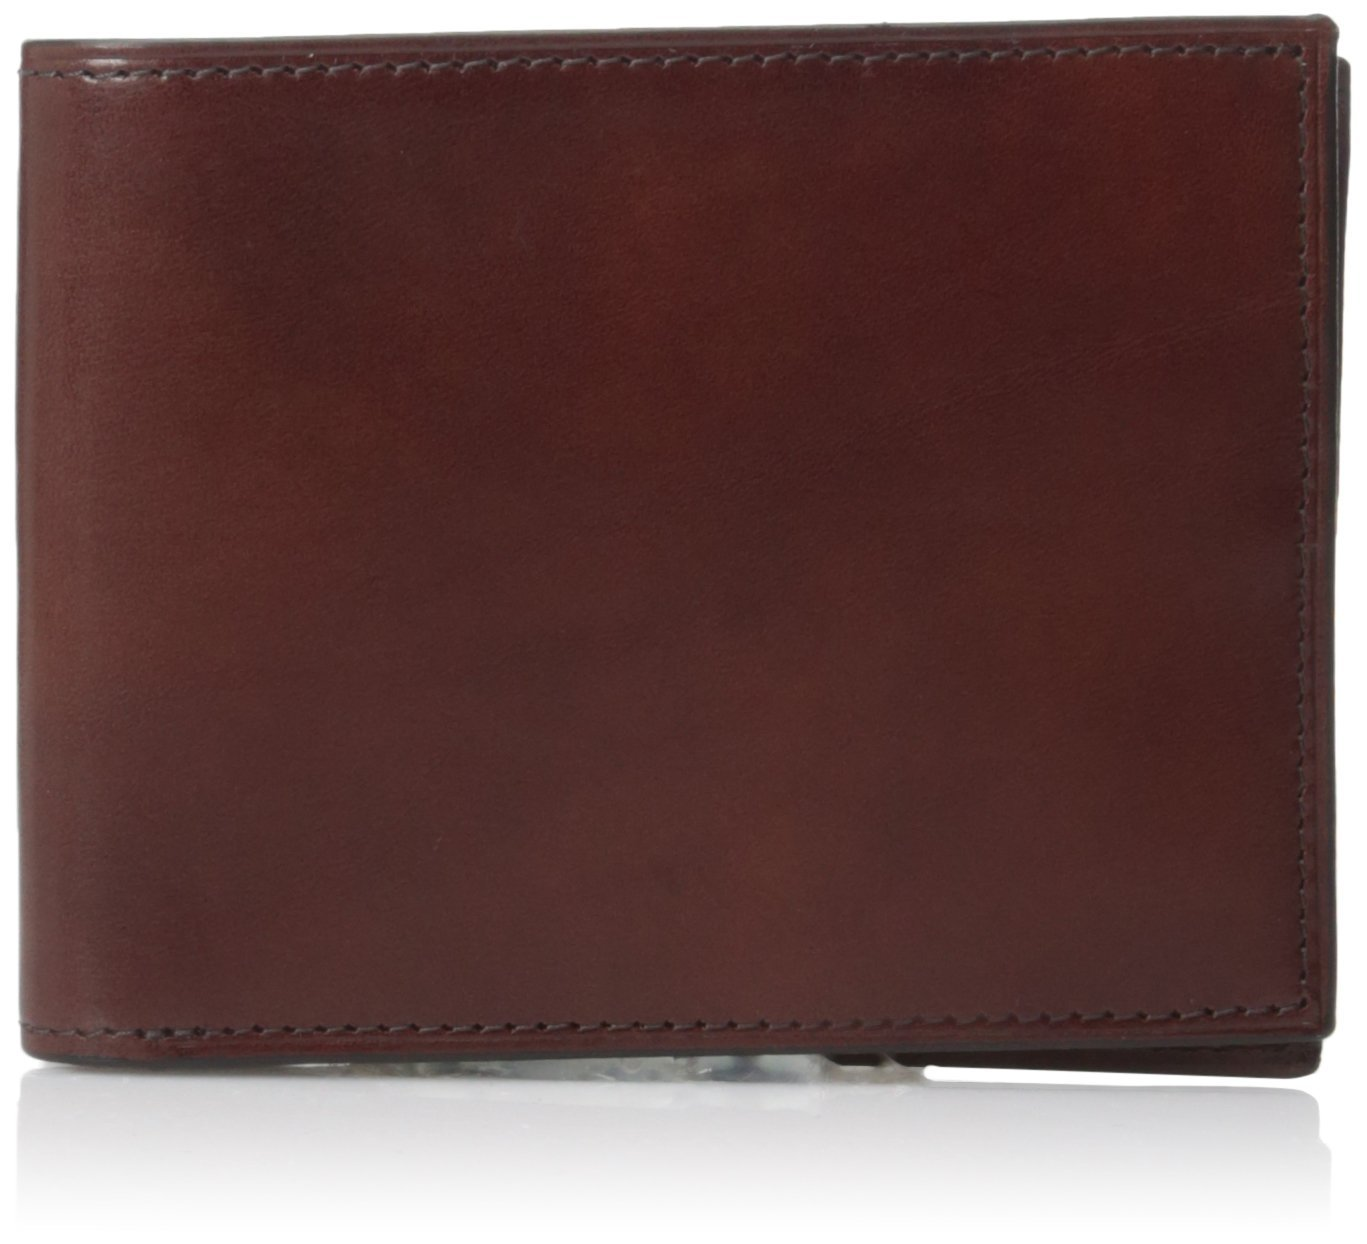 Bosca Old Leather Collection - Executive ID Wallet Wallet Dark Brown Leather